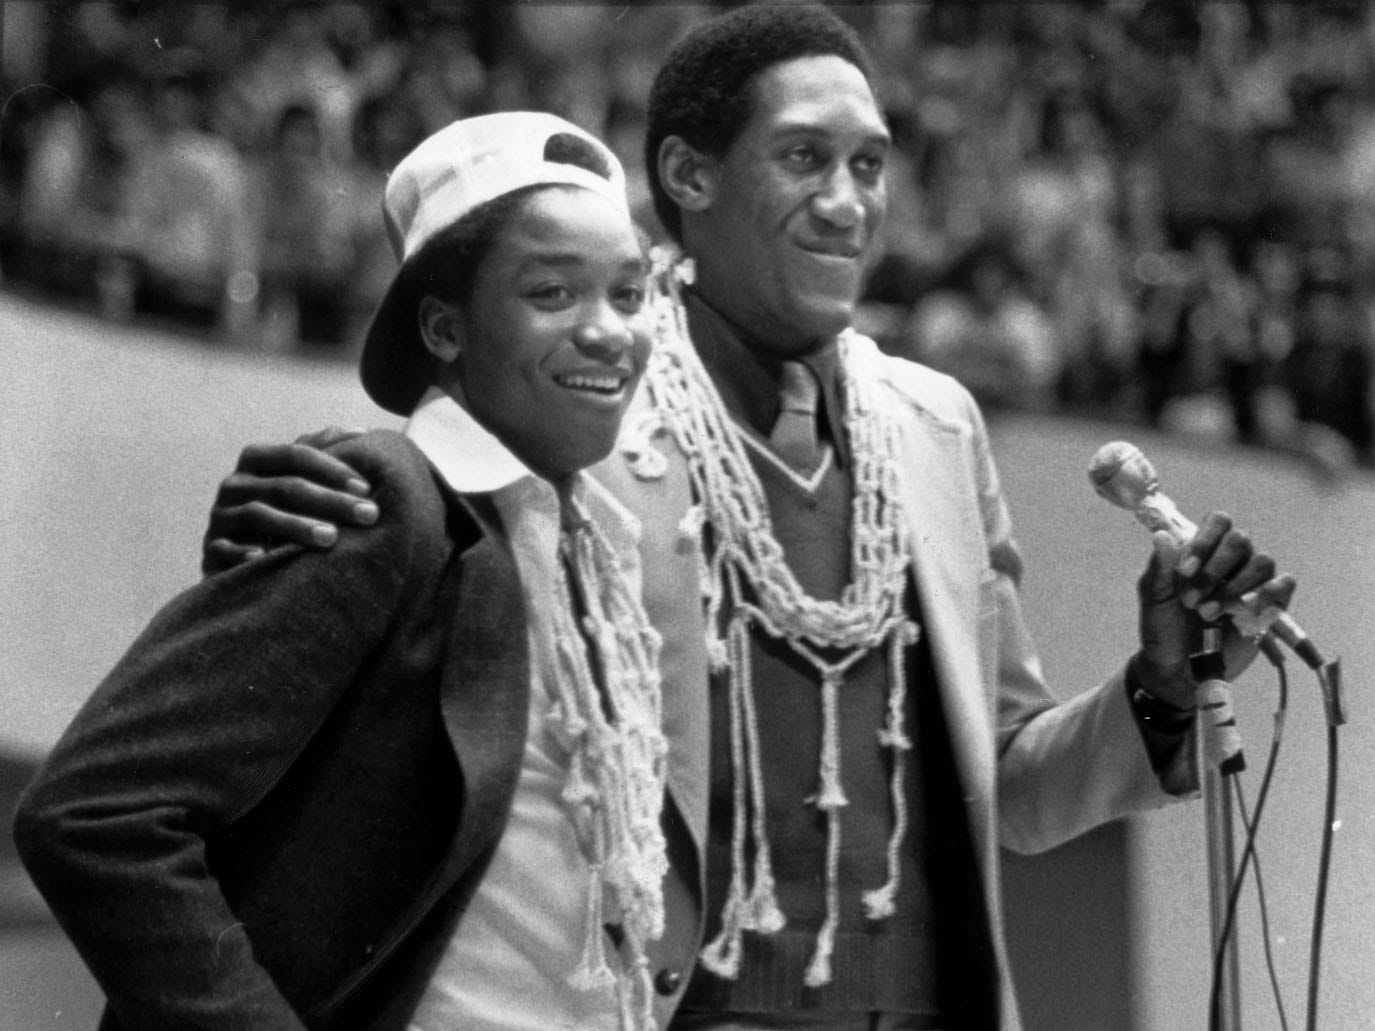 Indiana University players Isiah Thomas (left) and Ray Tolbert bask in glory at Assembly Hall on March 31 1981 after winning the NCAA championship